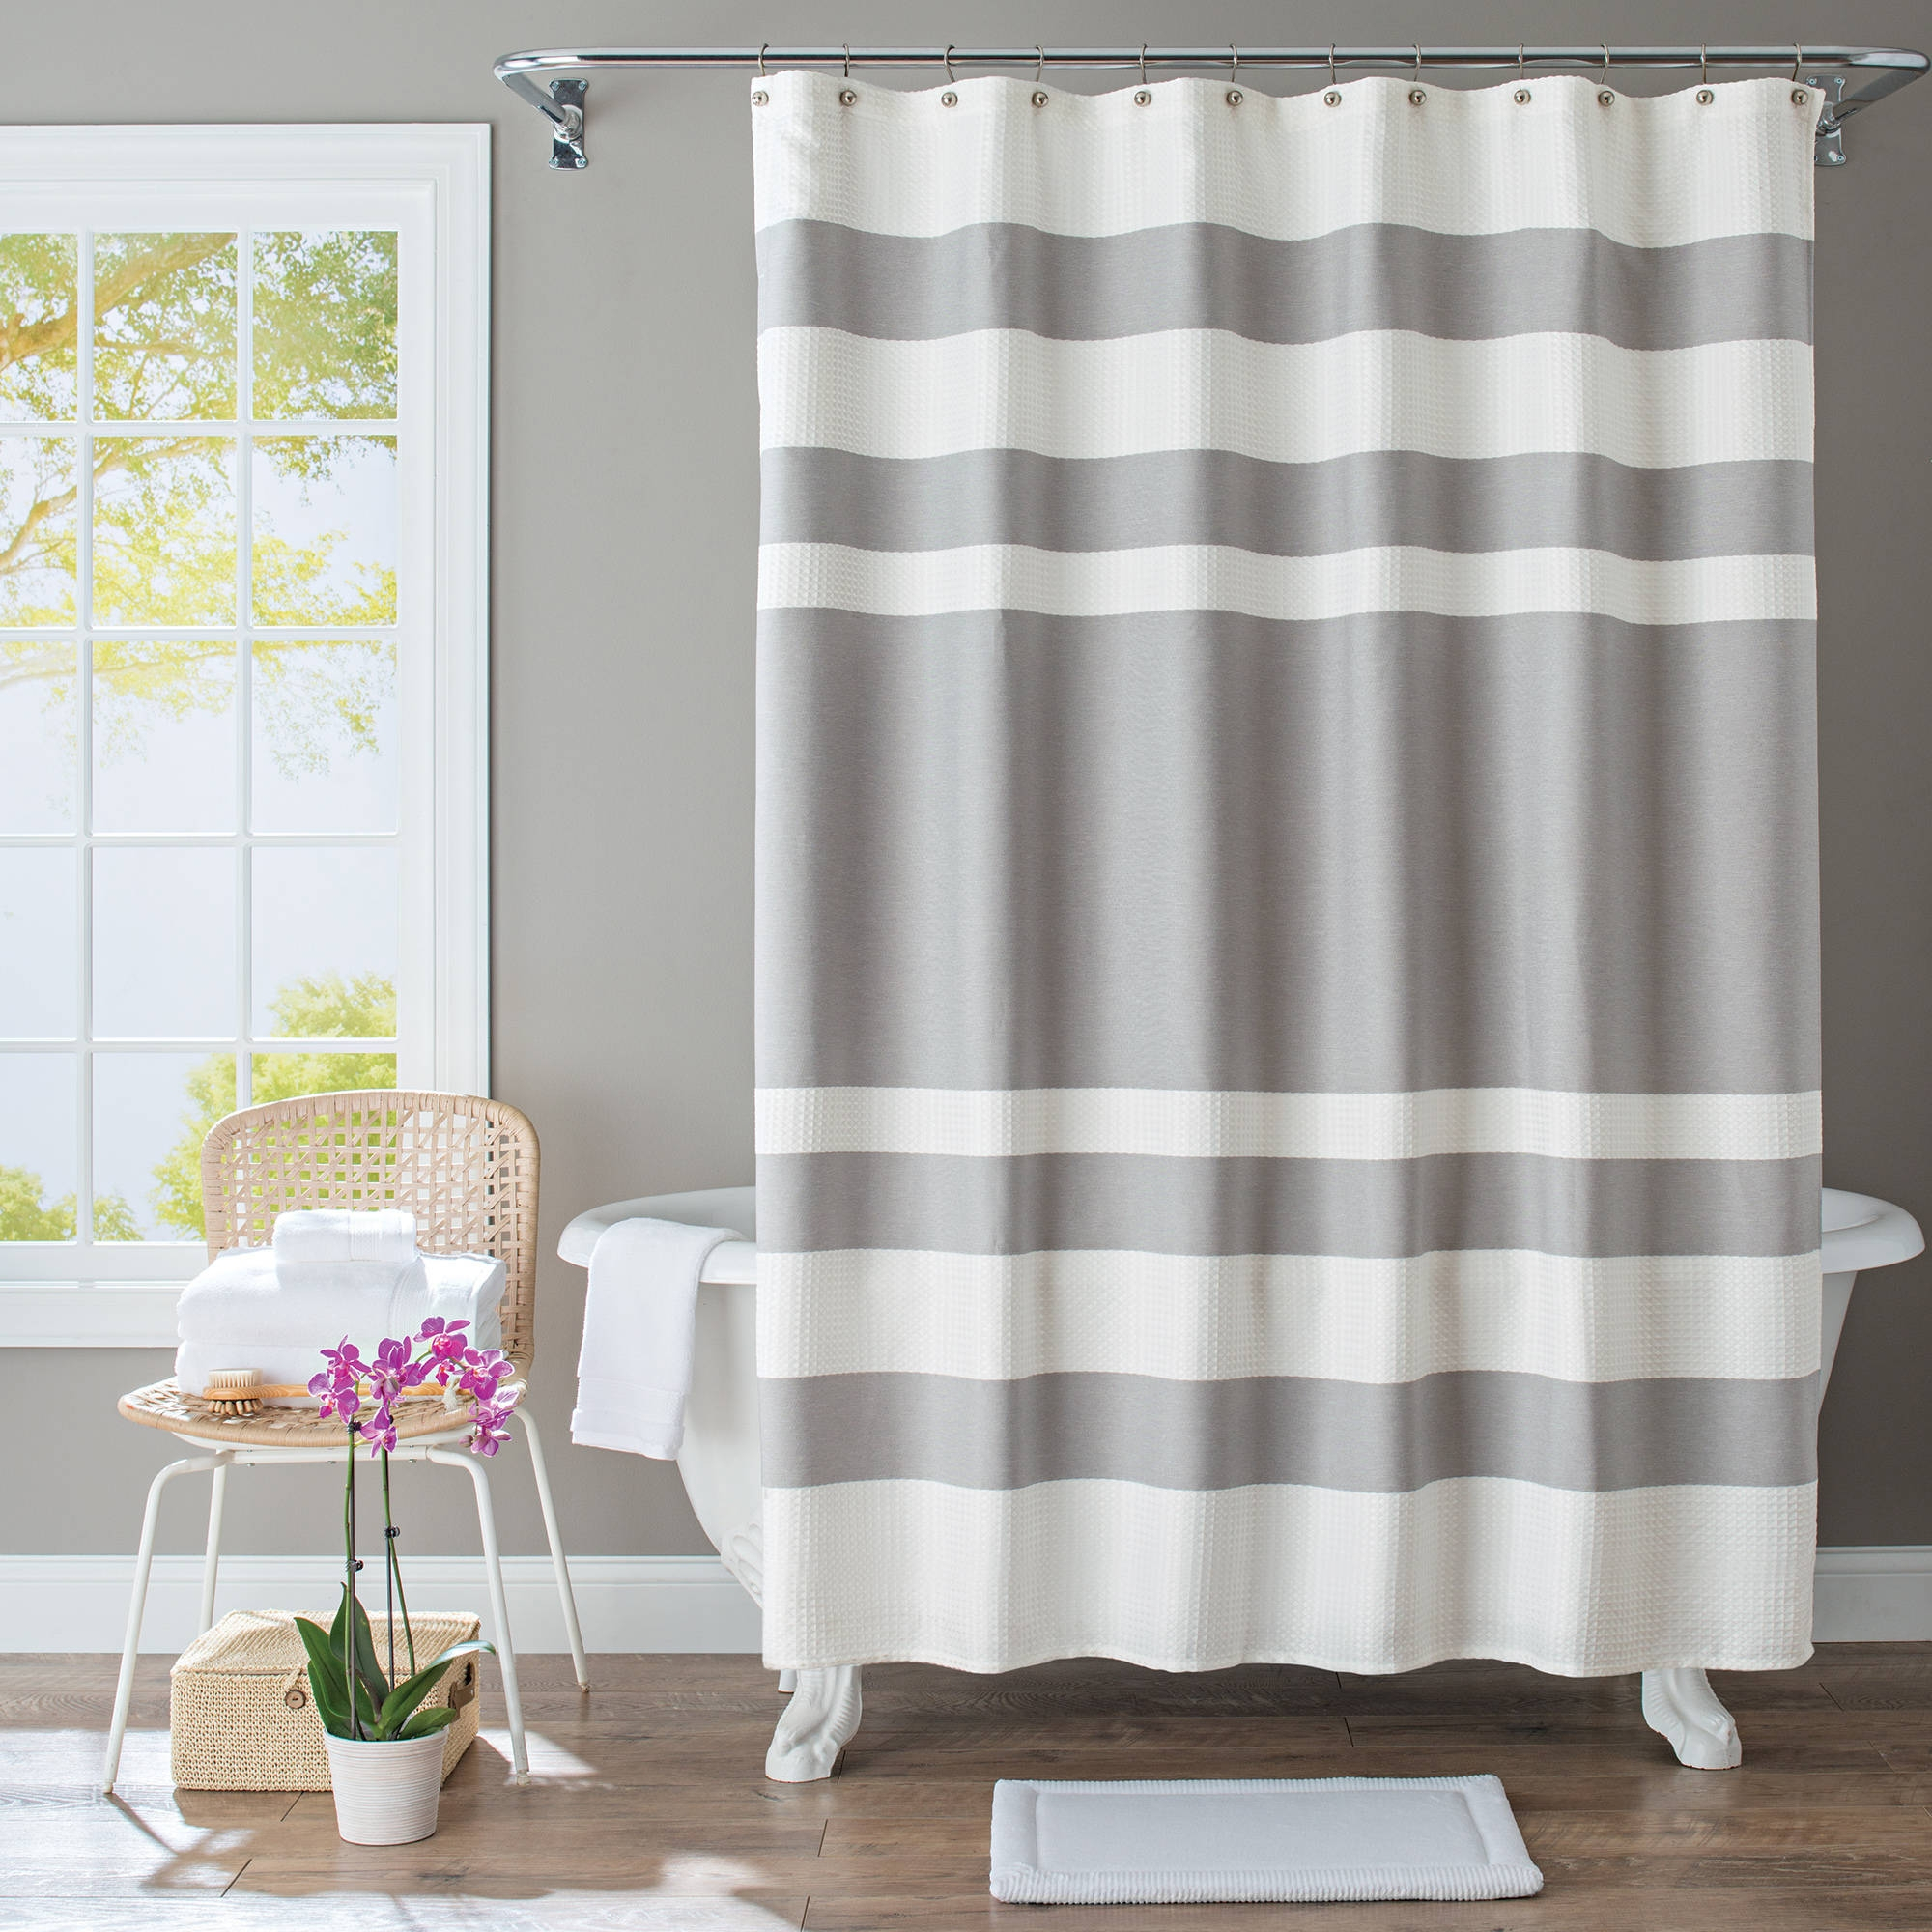 curtain decorative com of image hooks ip with seashell curtains home set shower walmart rings shell